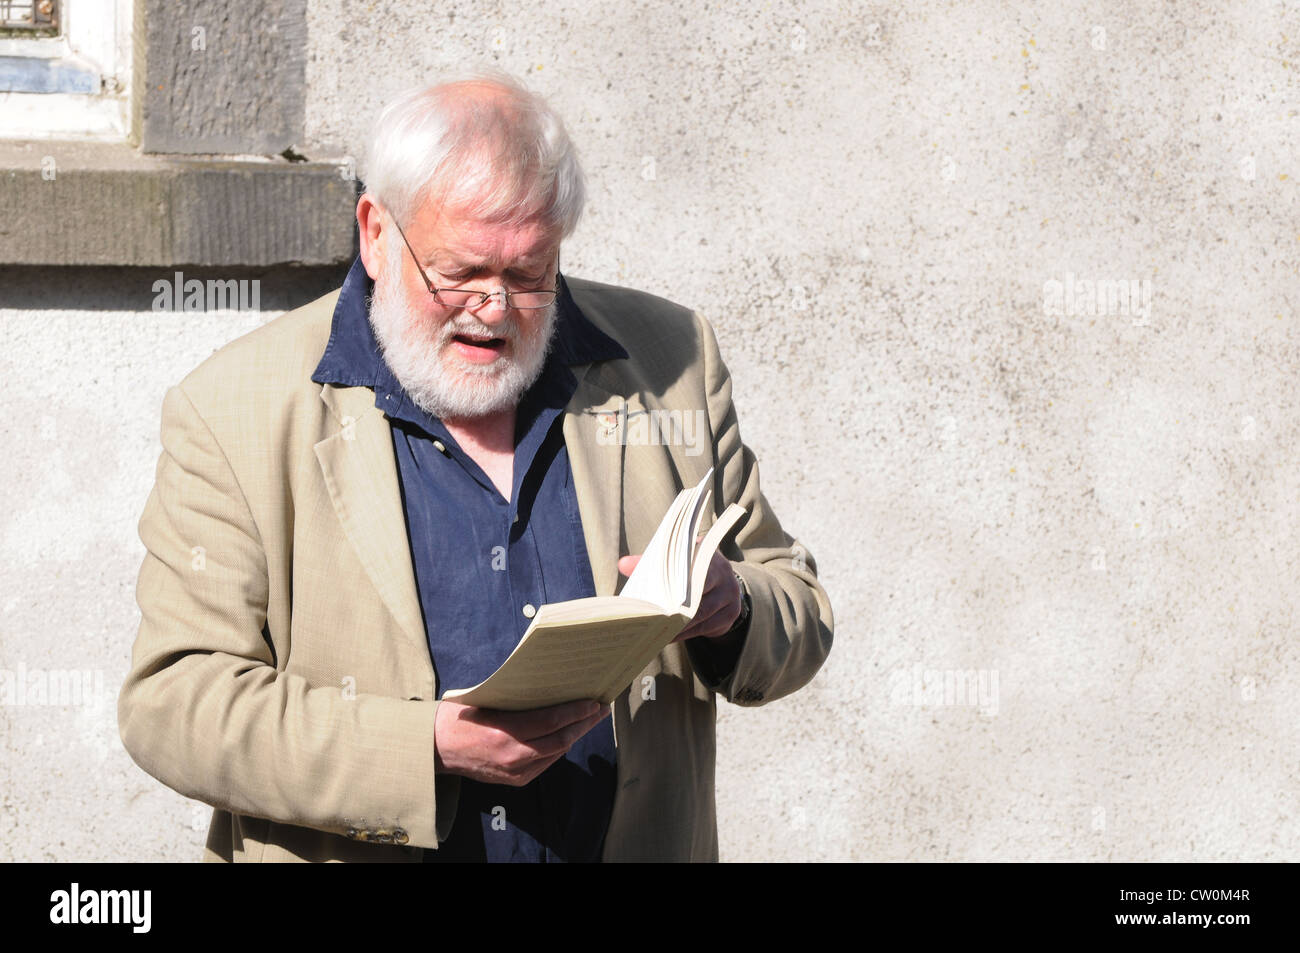 Michael Longley, CBE, reading one of his poems at the 3rd Feis Teamhra at the Hill of Tara, Ireland - Stock Image